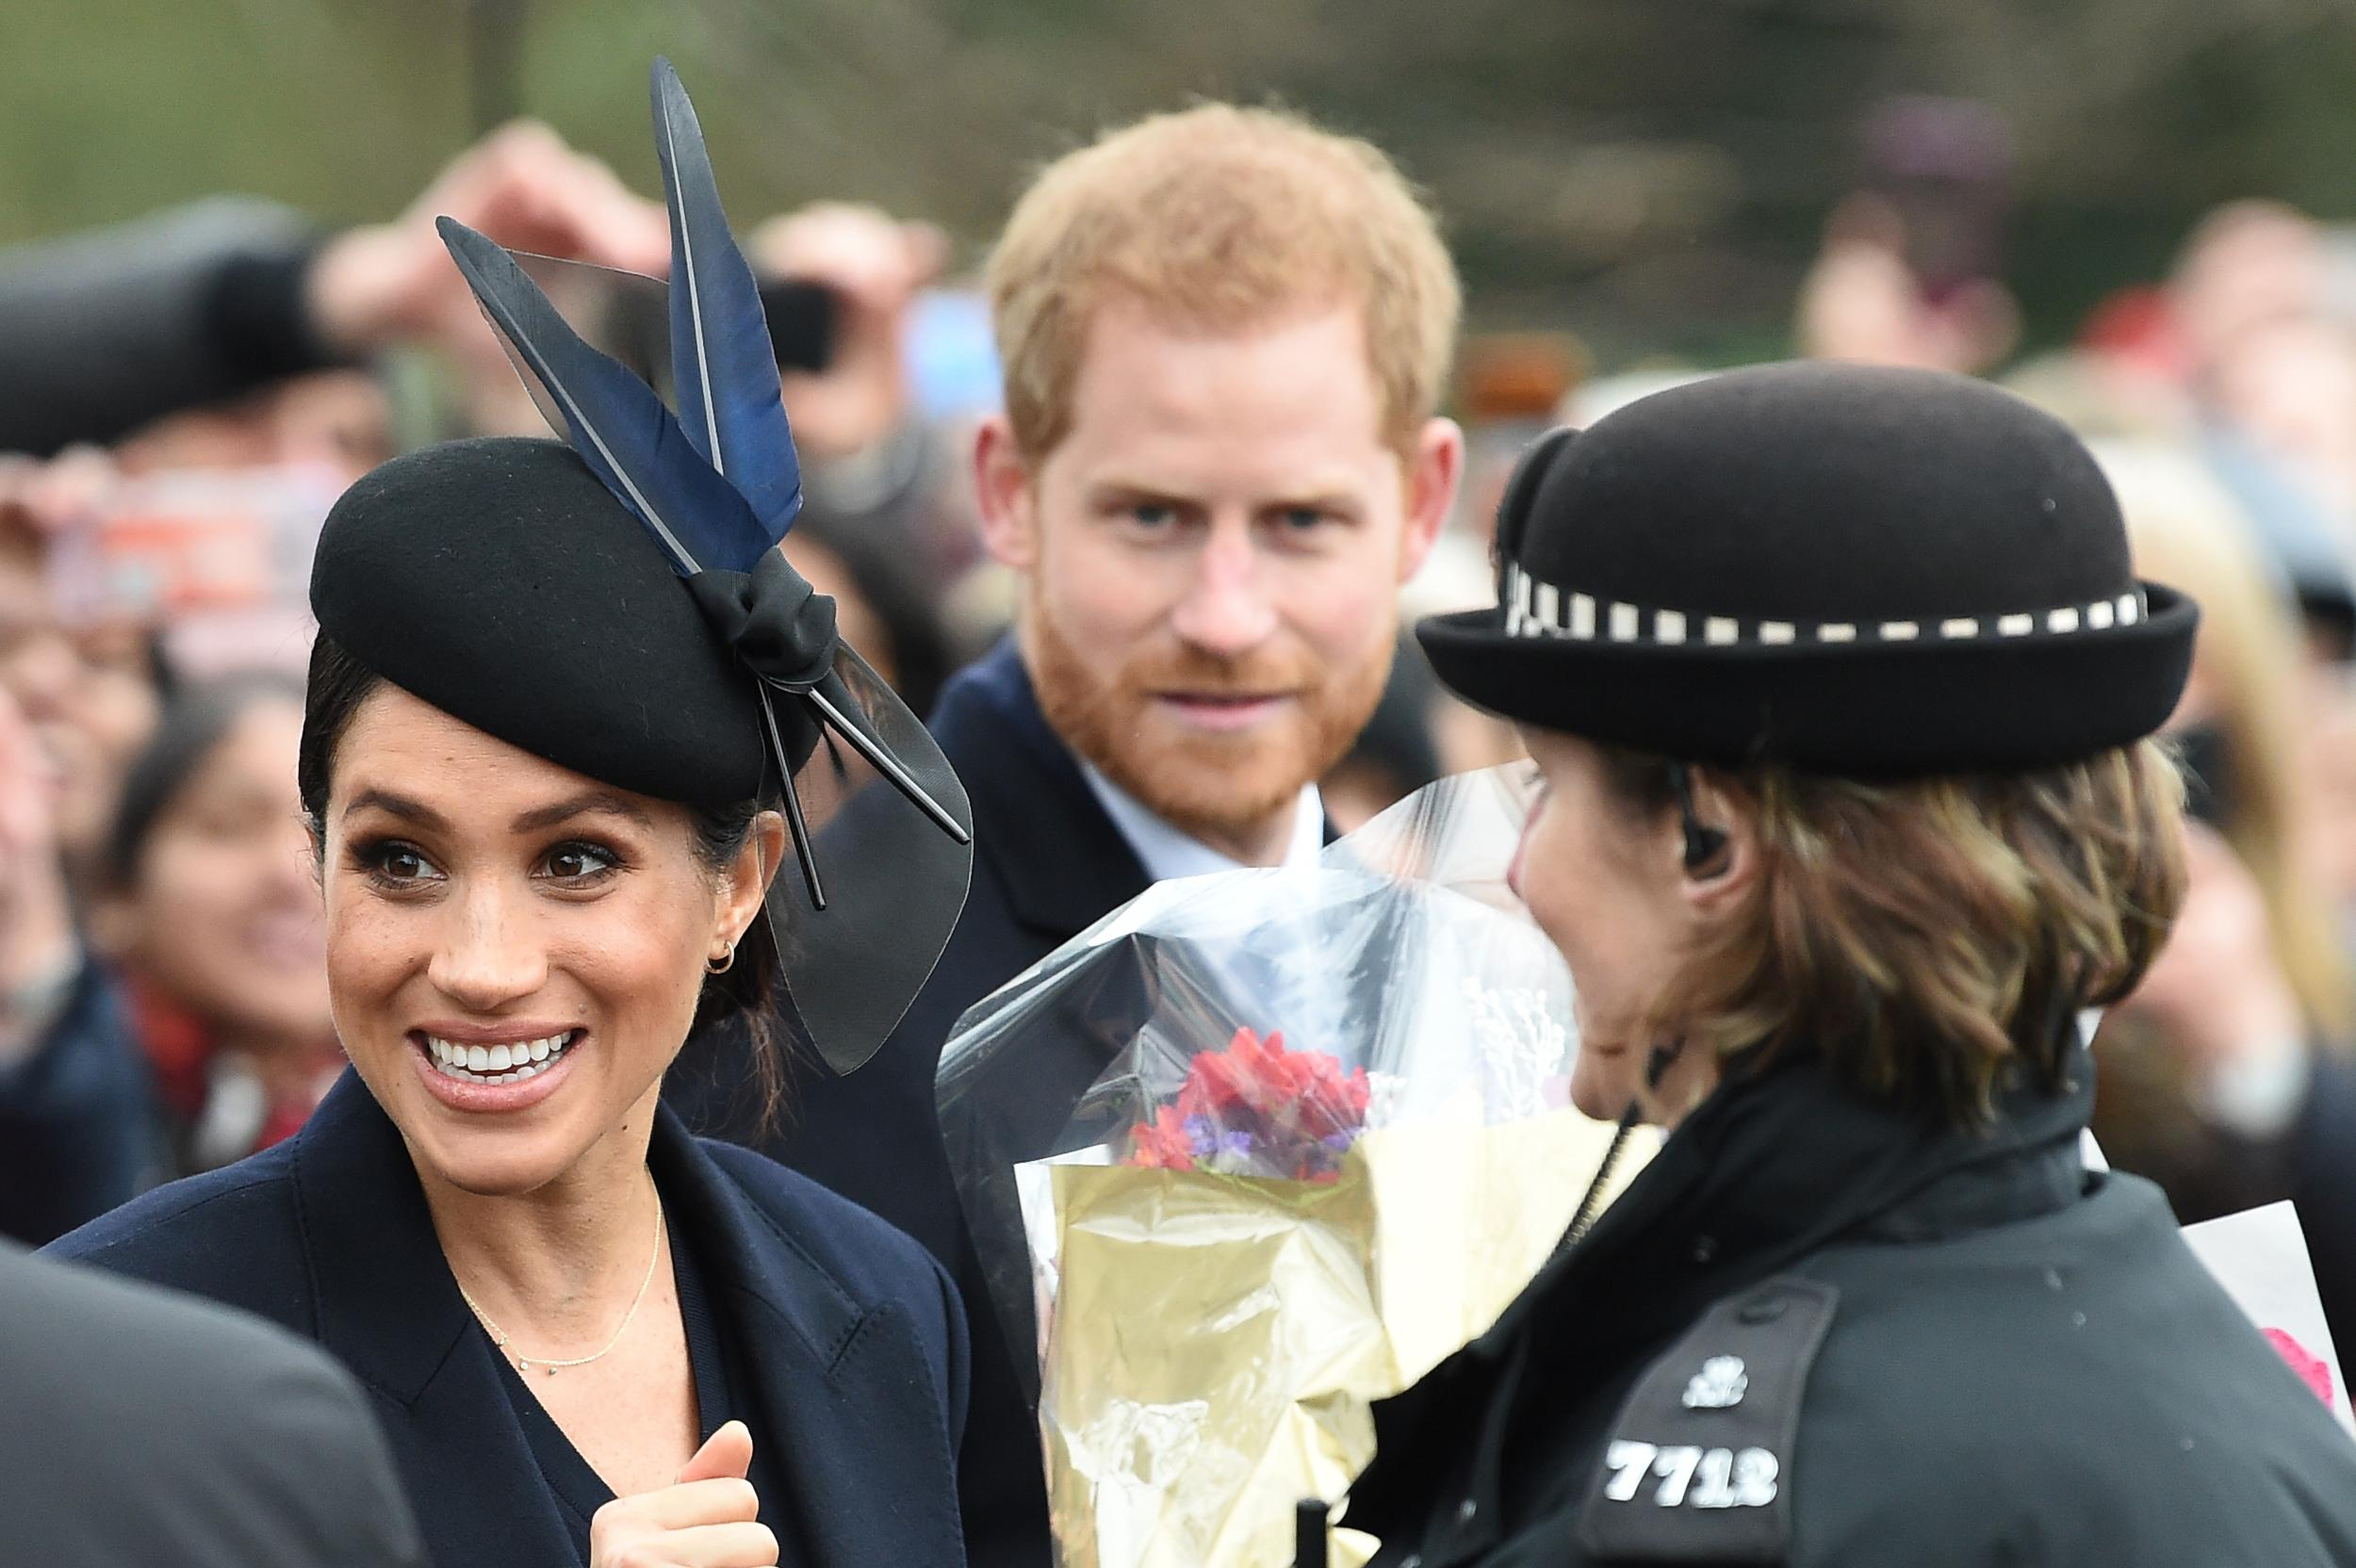 Meghan, Duchess of Sussex and Britain's Prince Harry, Duke of Sussex,   depart after the Royal Family's traditional Christmas Day service at St Mary Magdalene Church in Sandringham, Norfolk, eastern England, on December 25, 2018. (Photo by Paul ELLIS / AFP)        (Photo credit should read PAUL ELLIS/AFP/Getty Images)